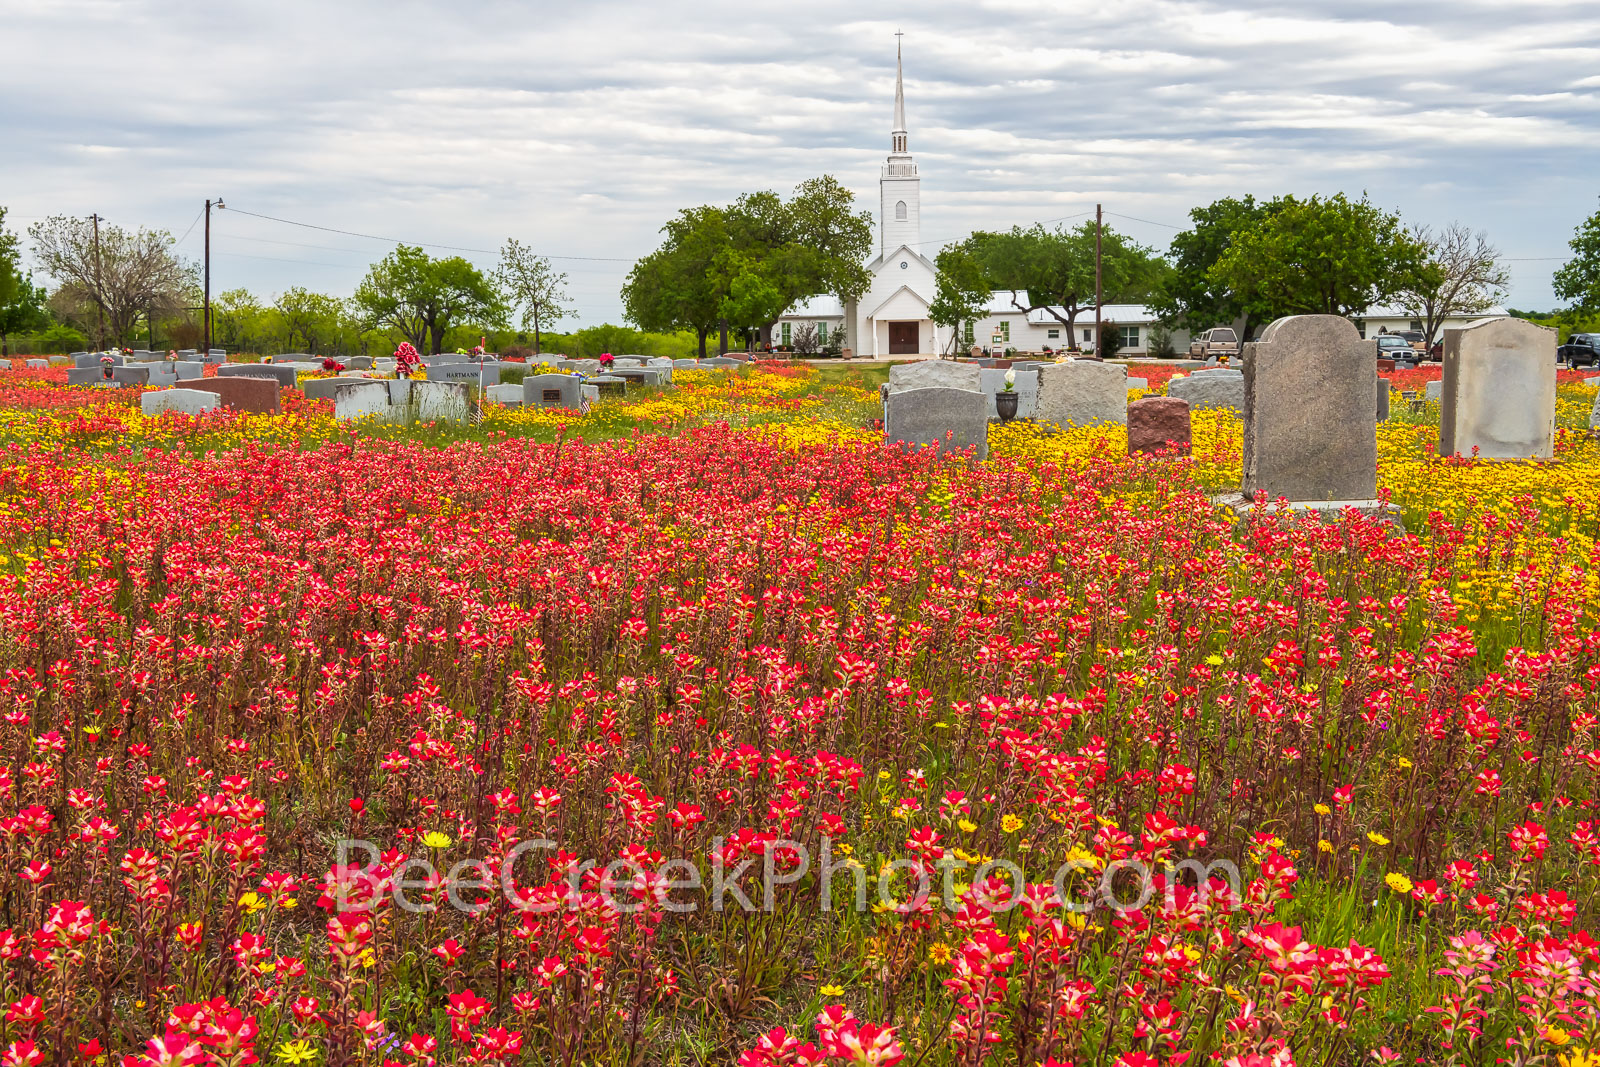 wildflowers, texas wildflowers, bluebonnets, indian paintbrush, yellow coreopsis, church, tombstones, texas, central texas, south texas, floral, flowers, plants, colorful wildflowers, backroads, vibra, photo